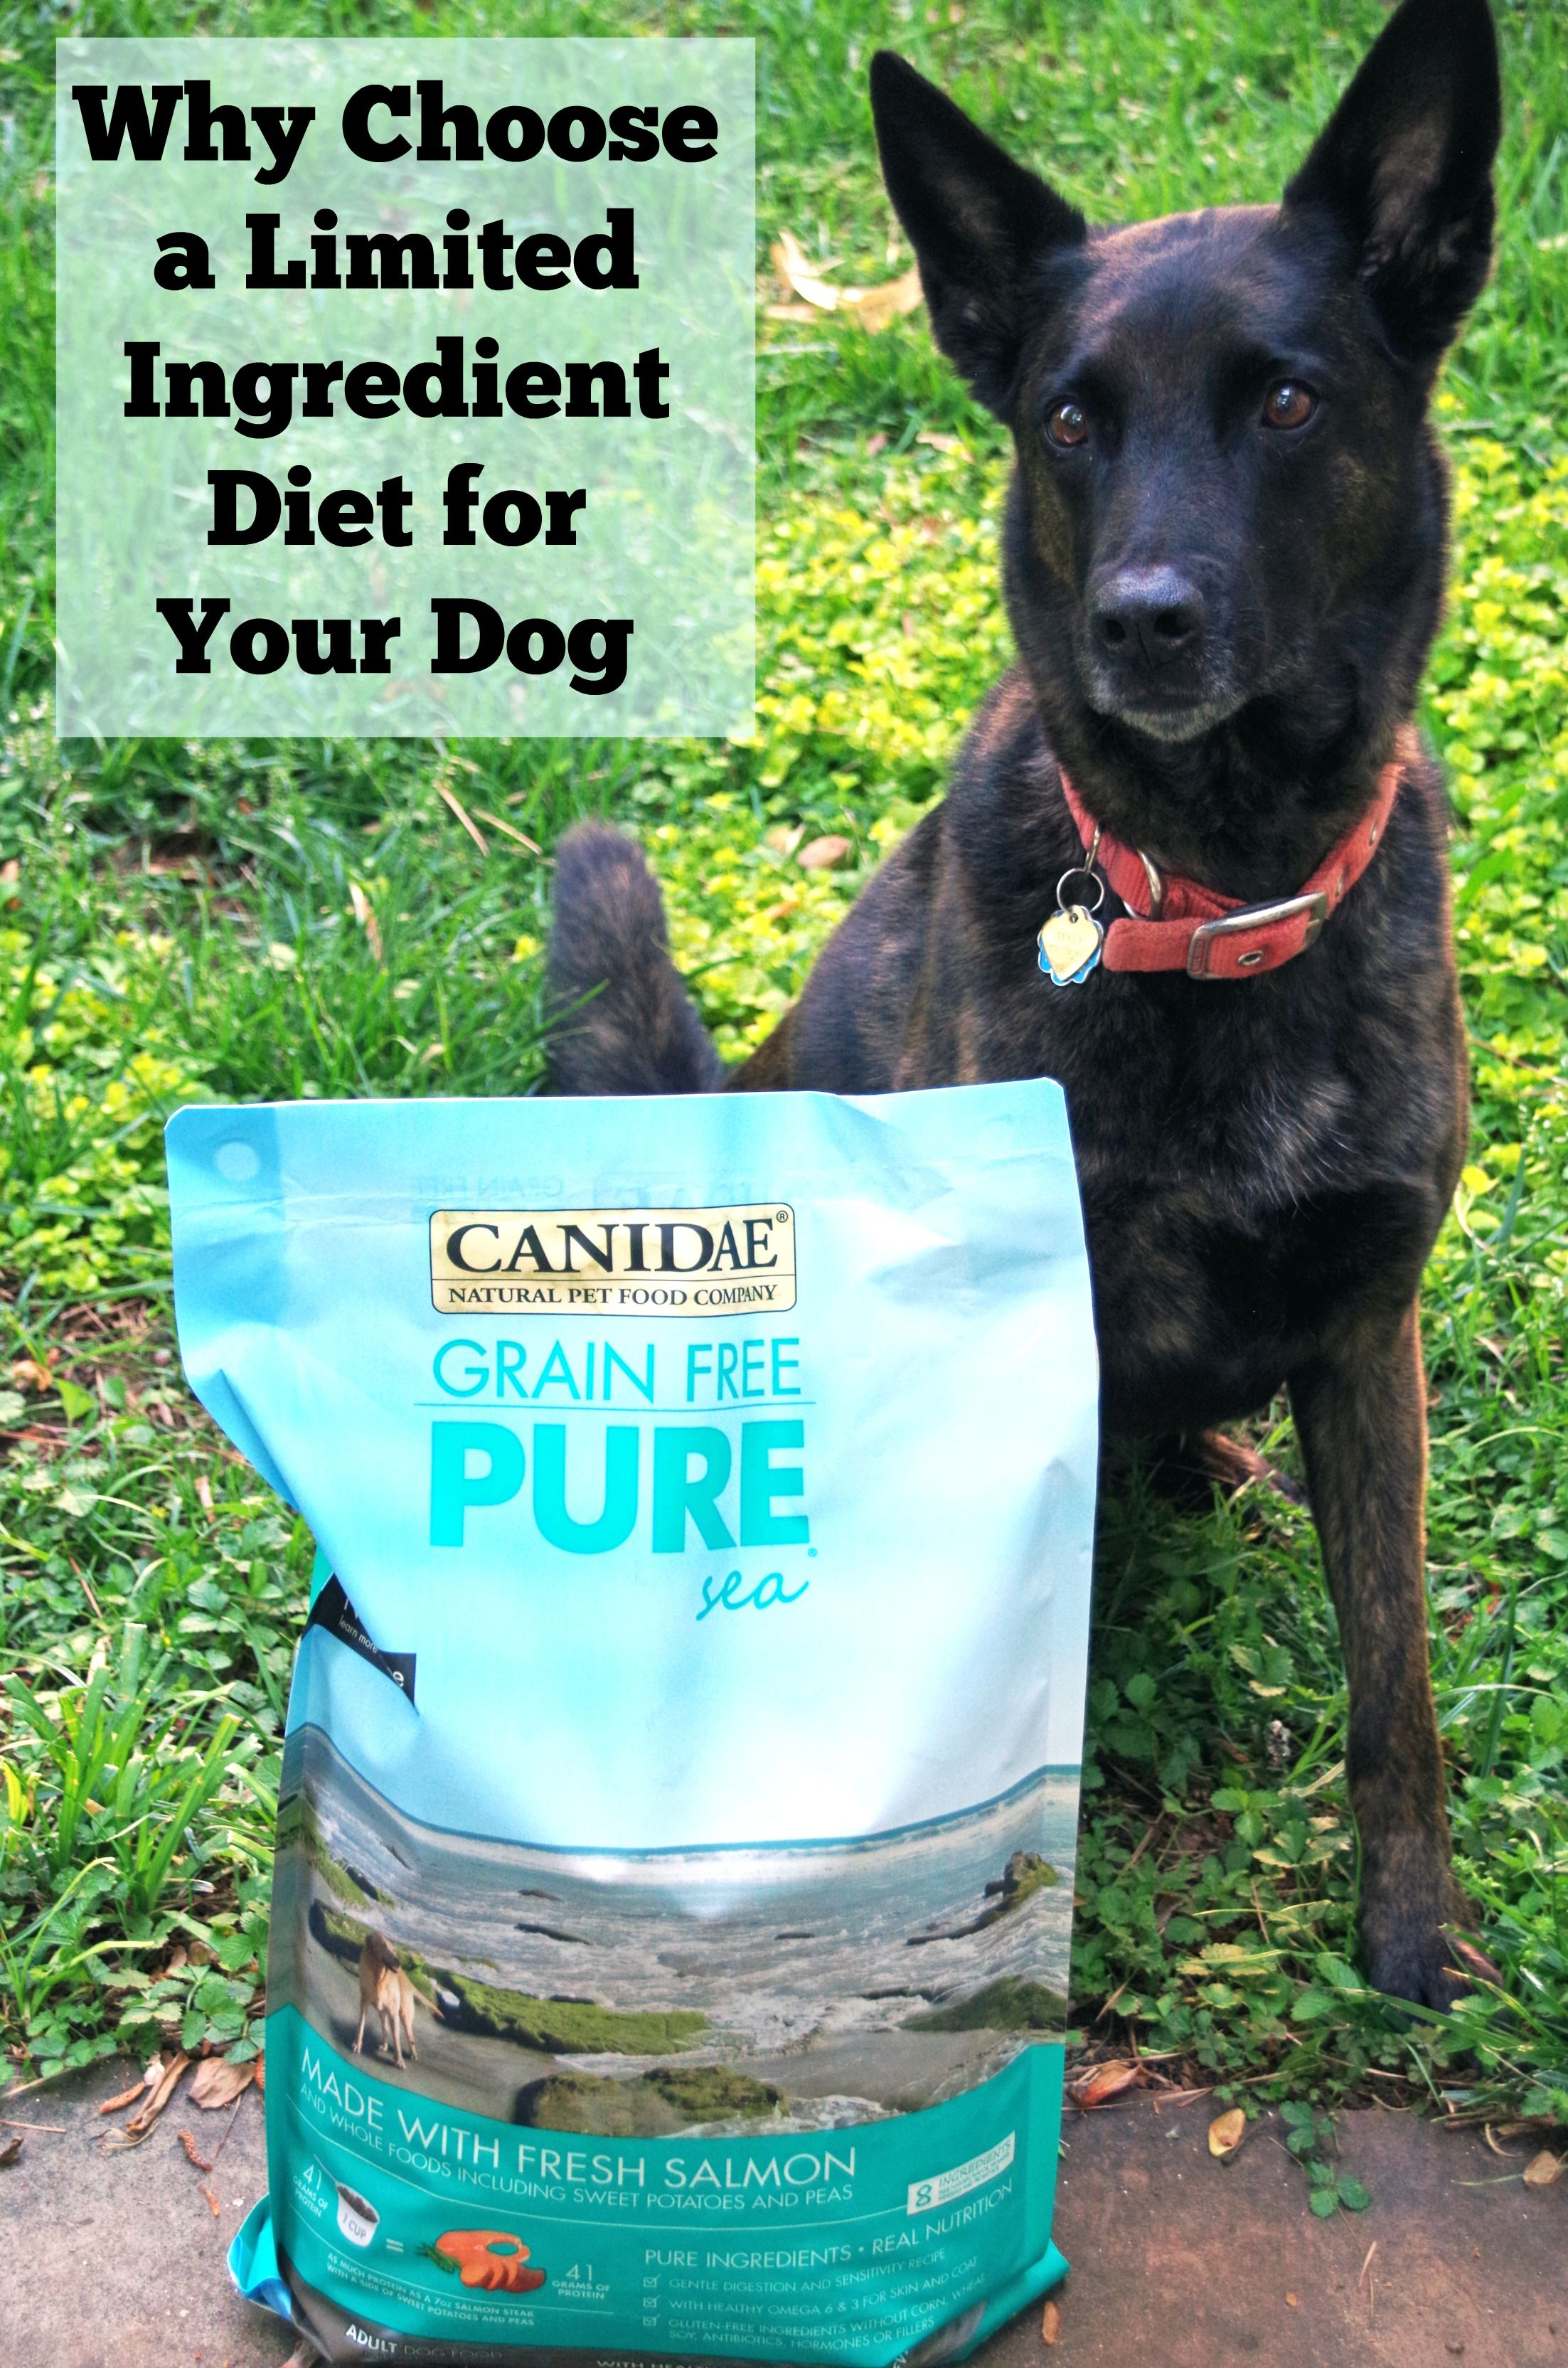 Choosing A Limited Ingredient Diet For Your Dog